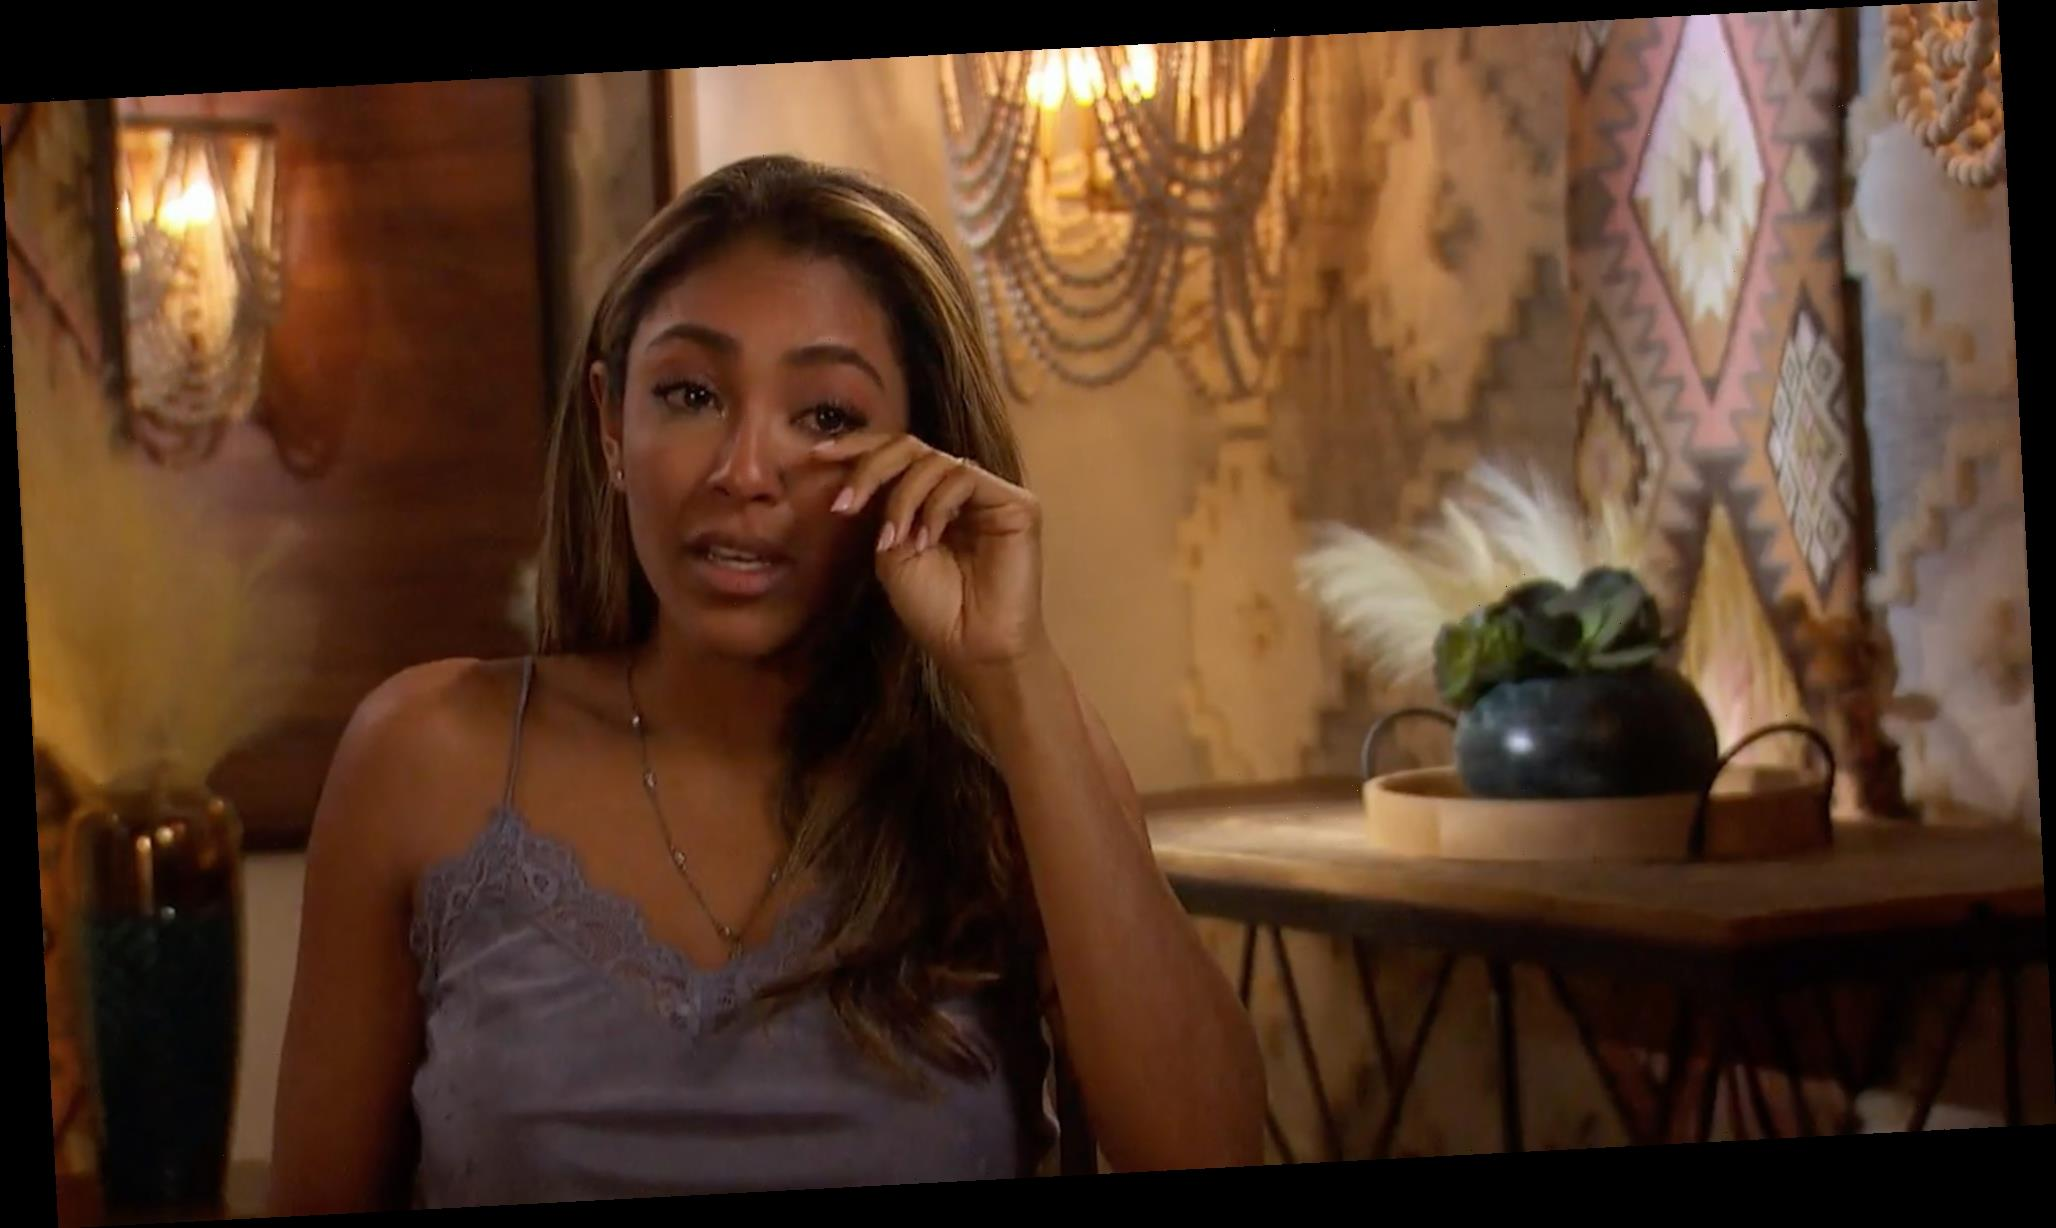 The Bachelorette: Things Take a Dramatic Turn for Tayshia Adams in Emotional Sneak Peak